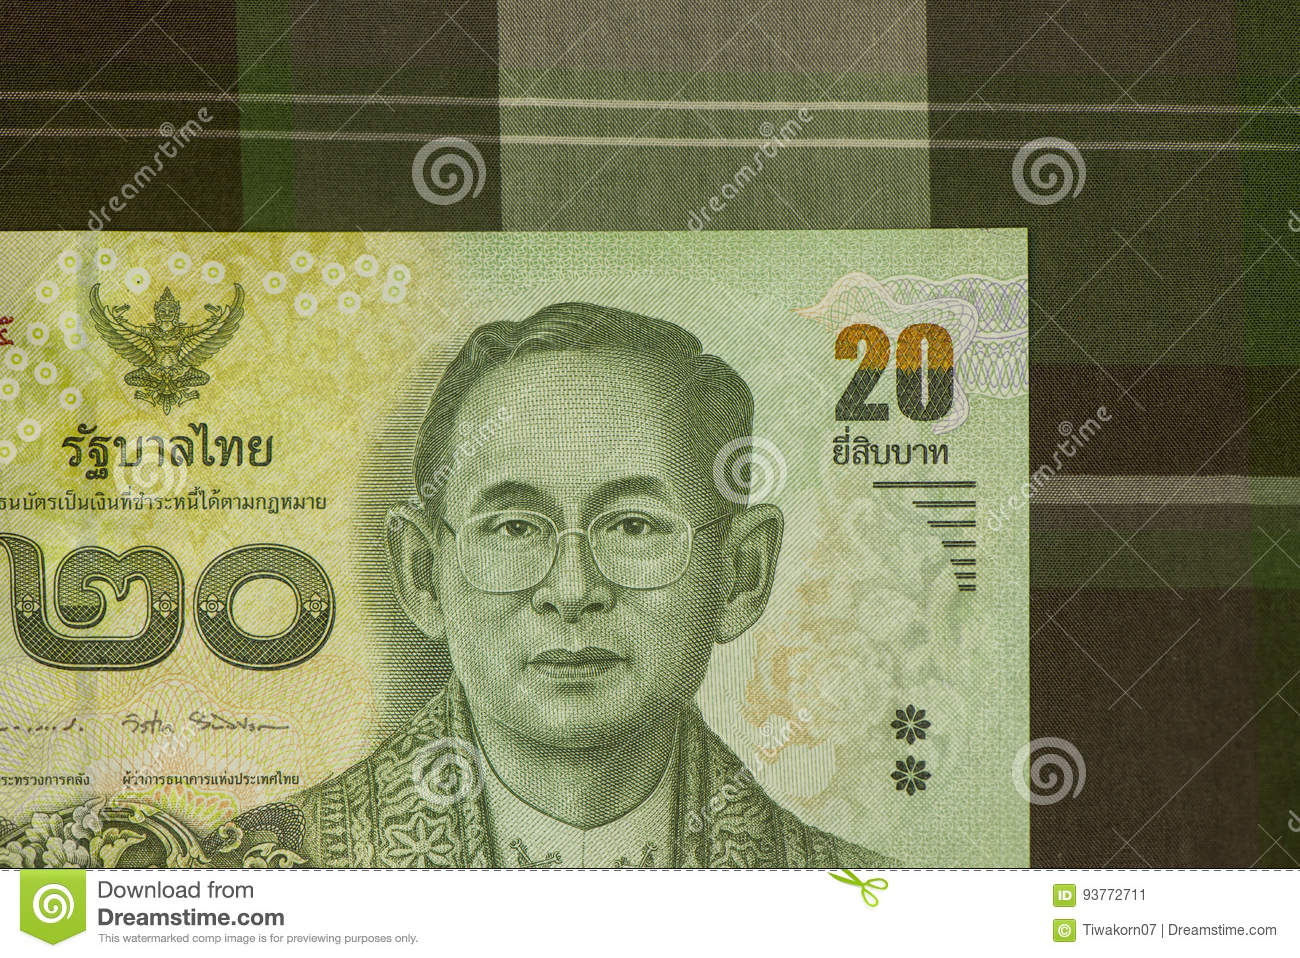 Close up of Thai banknote Thai bath with the image of Thai King. Thai banknote of 20 Thai baht on Green Scottish fabric.